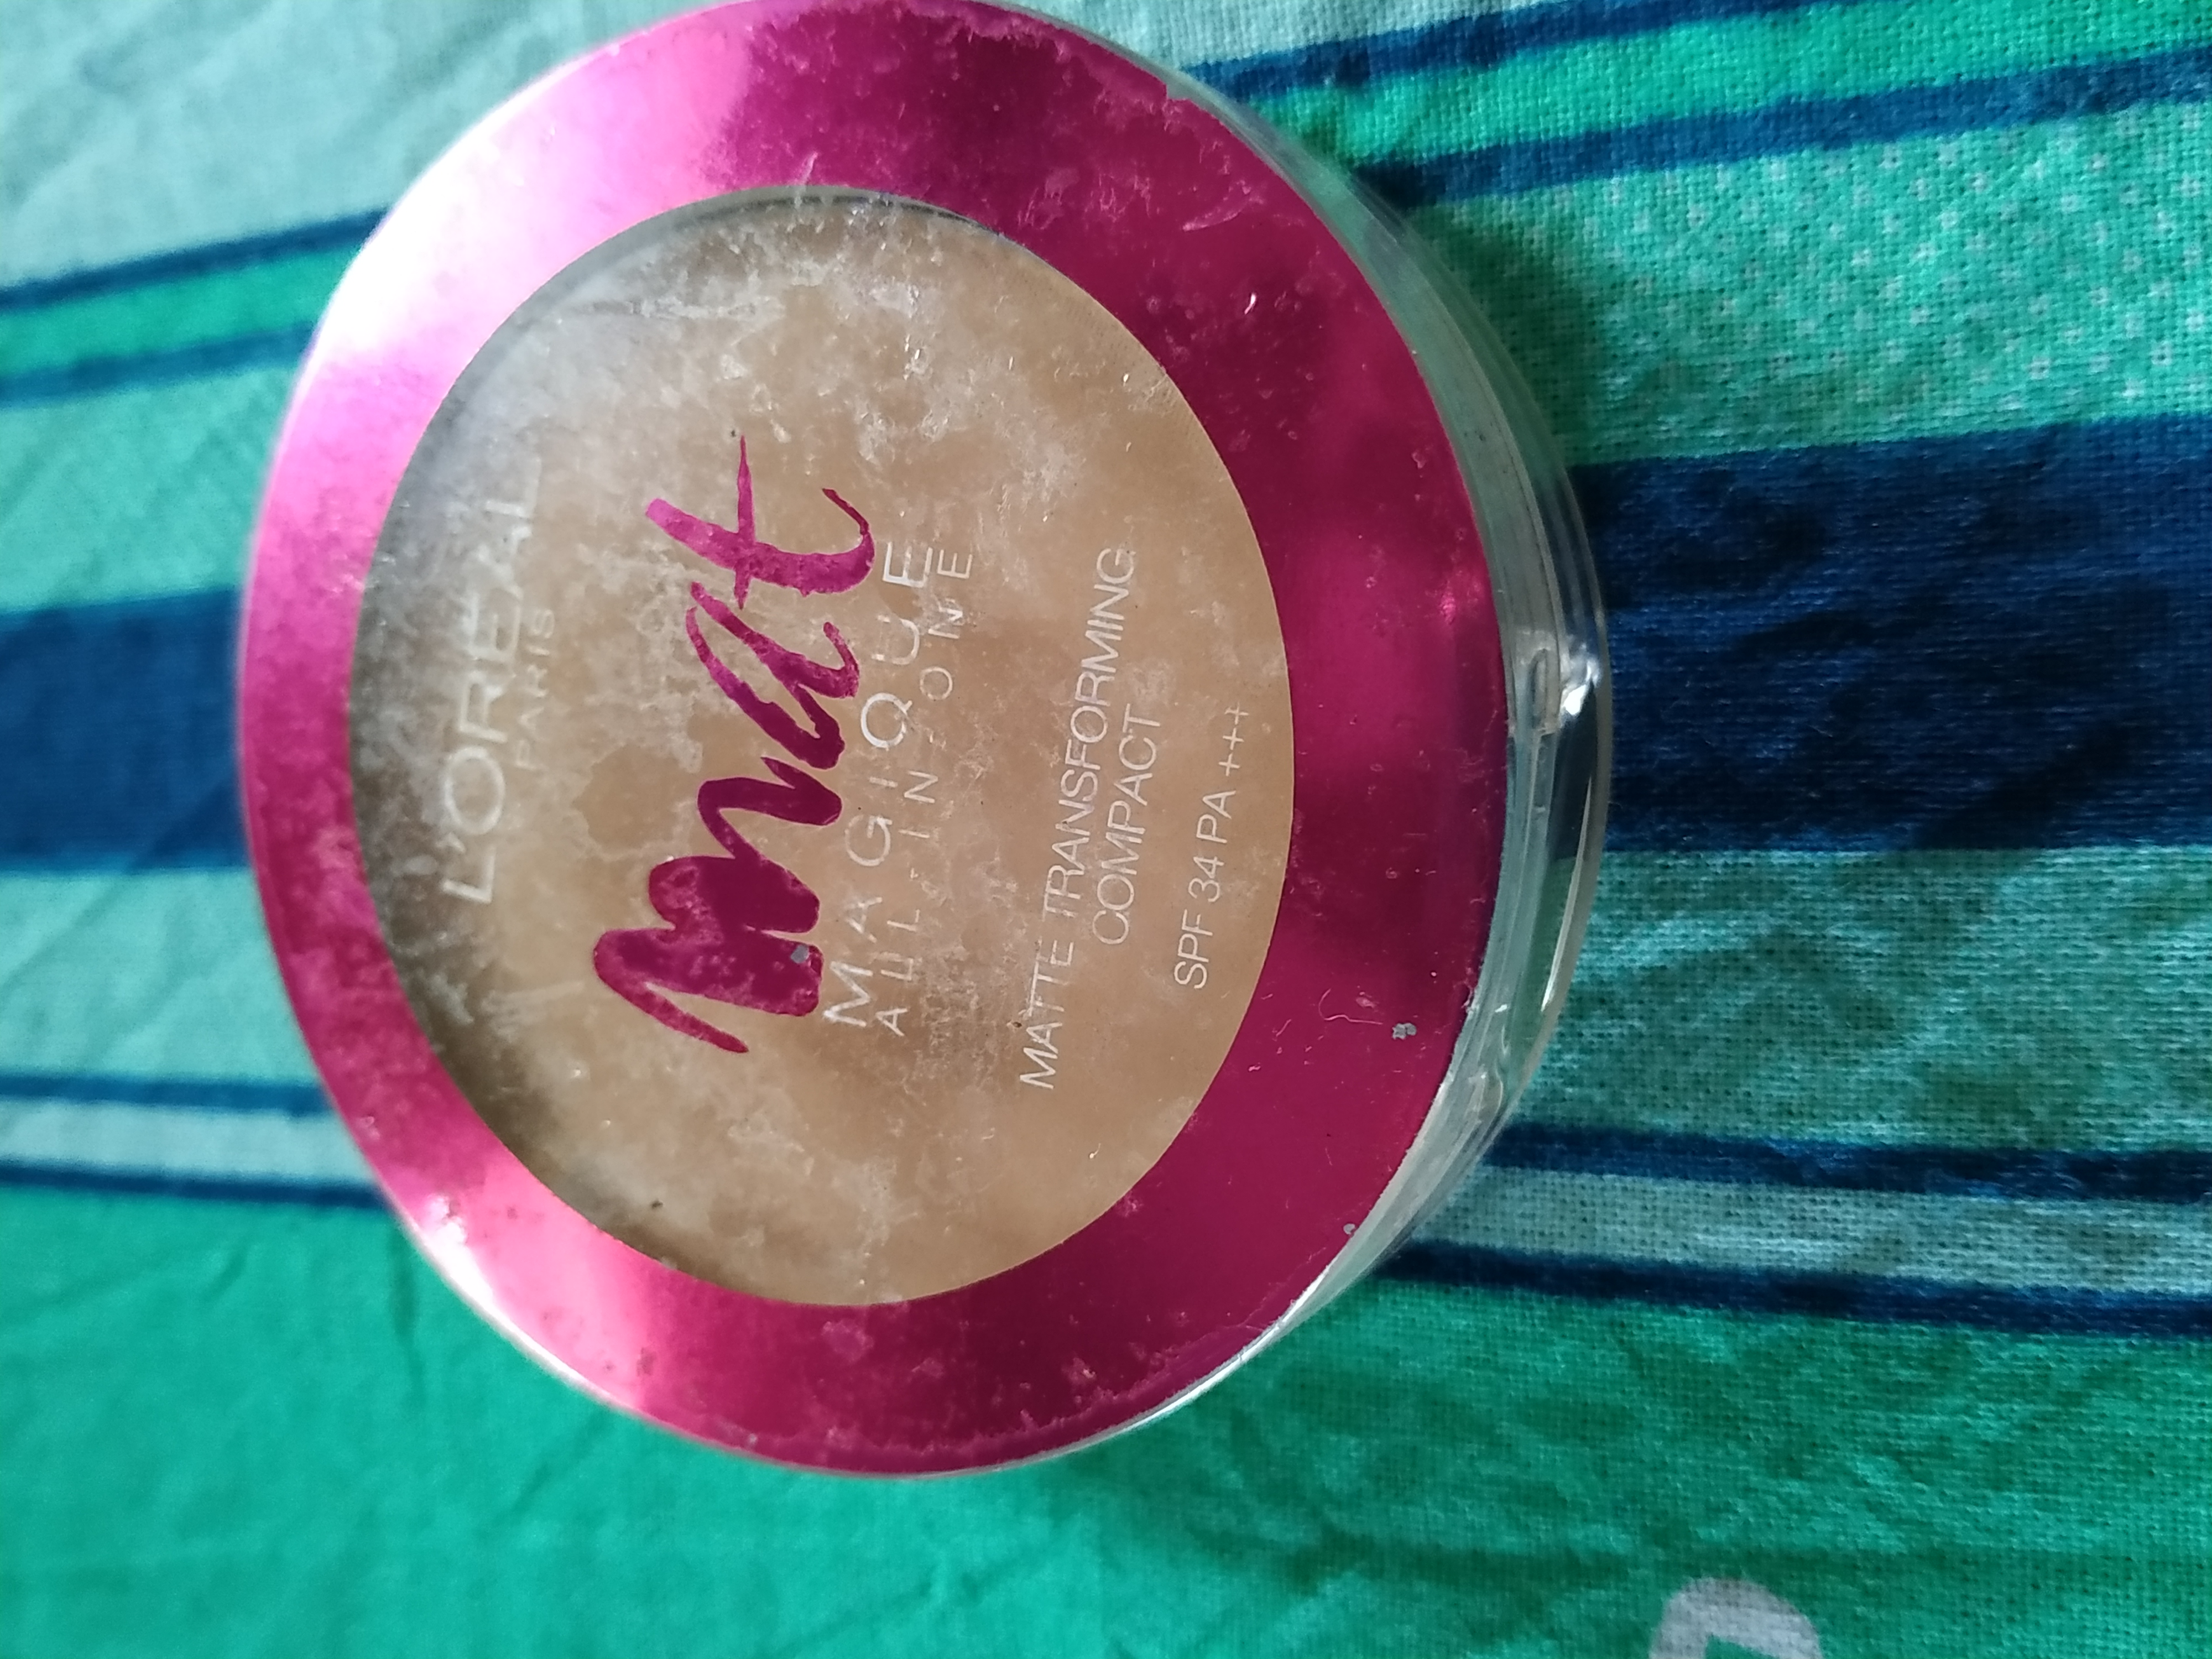 L'Oreal Paris Mat Magique All-In-One Pressed Powder-A ok ok product.-By sananda9310-1